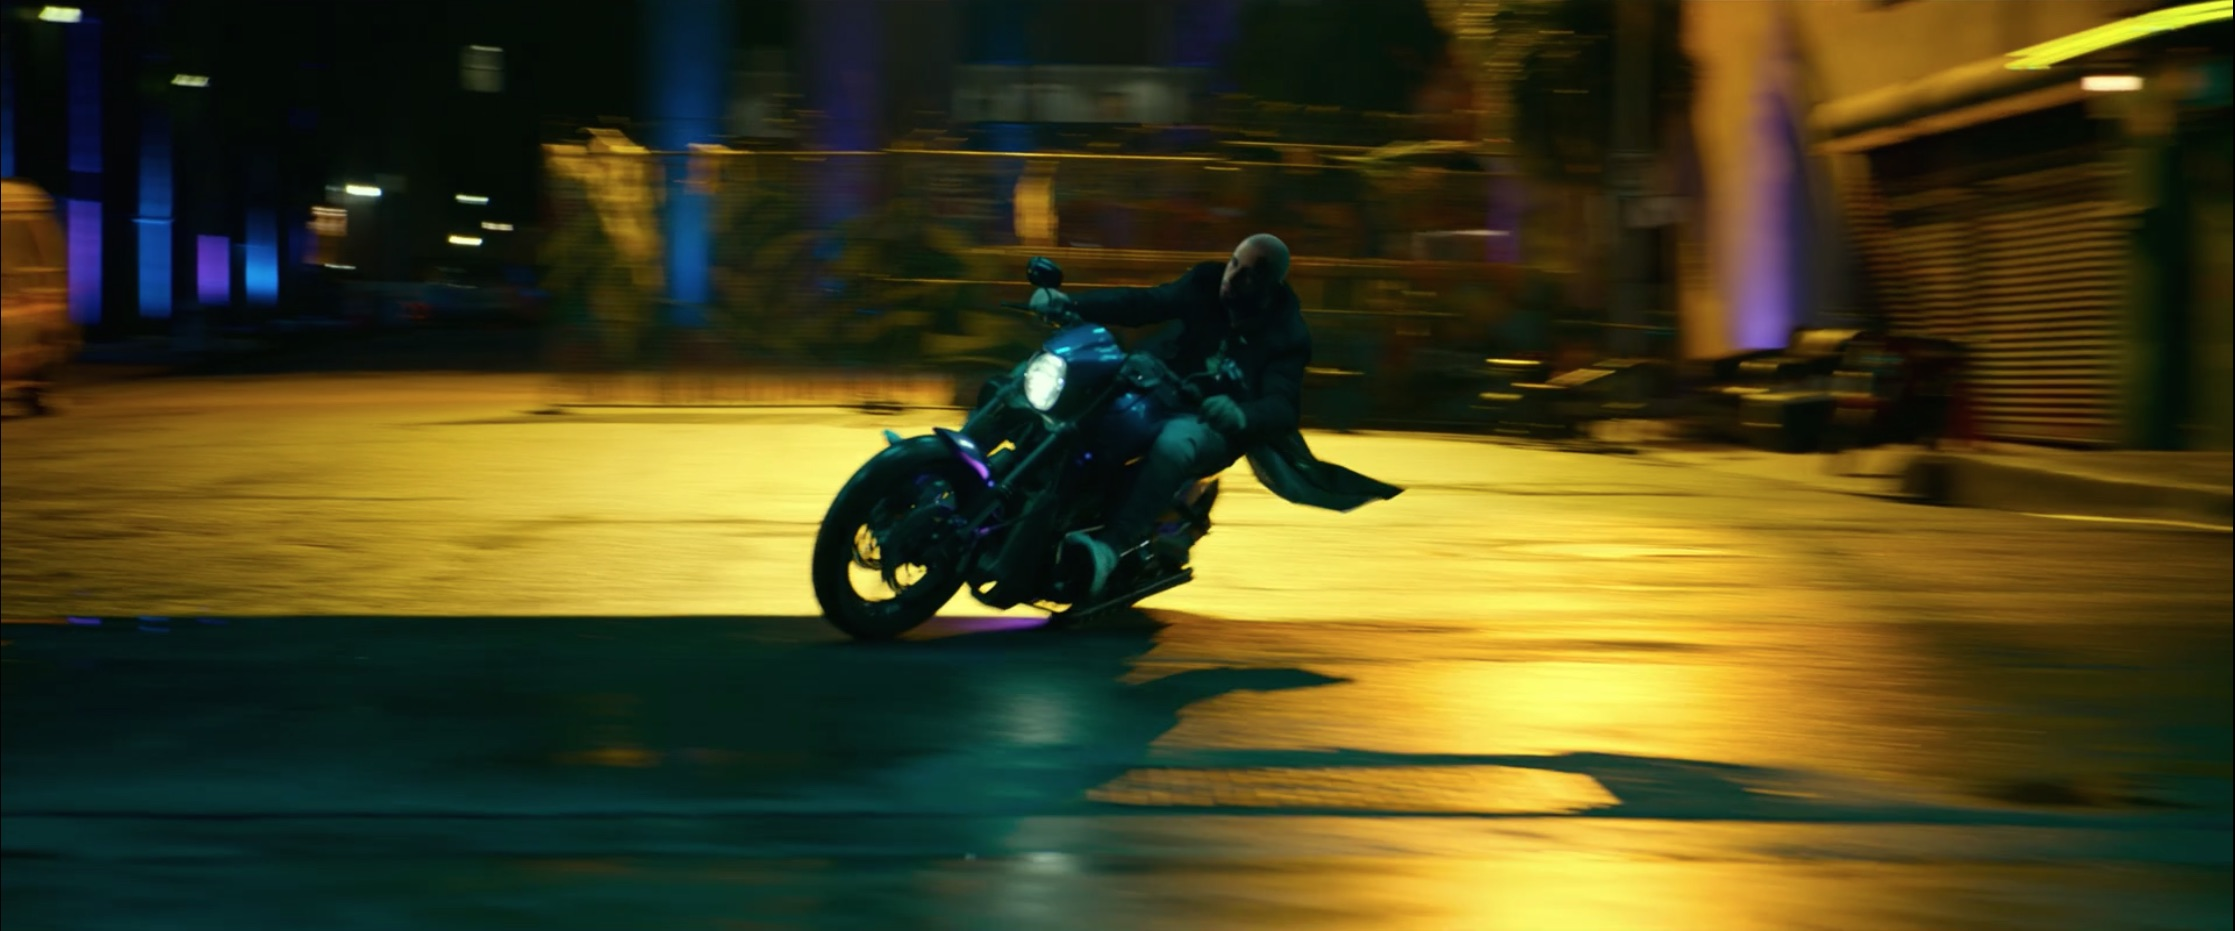 Bad Boys For Life motorcycle rider powerslide dynamic road action